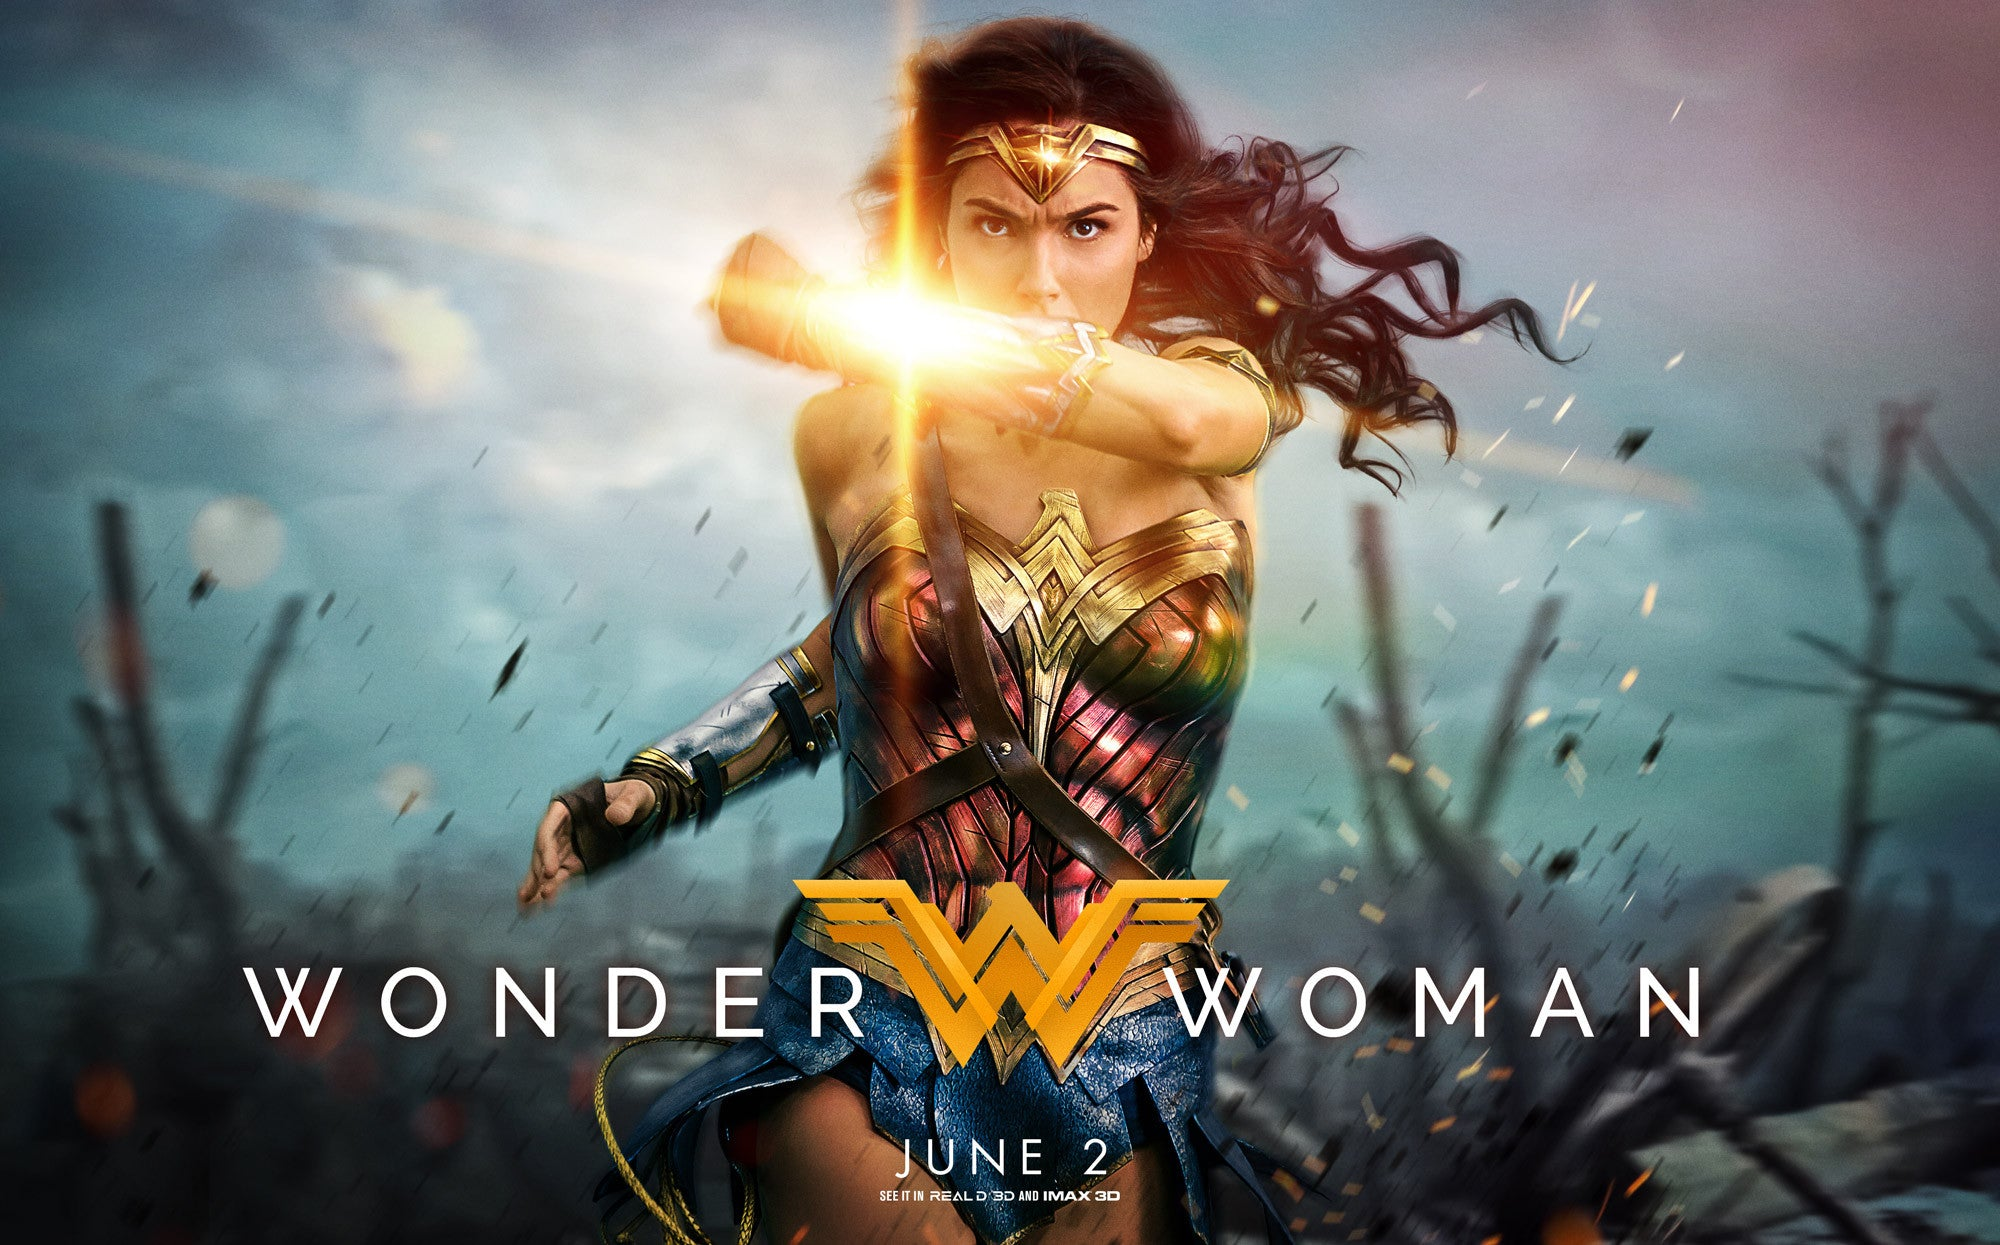 The Time to get Wonderful is Now: A Wonder Woman Movie Review